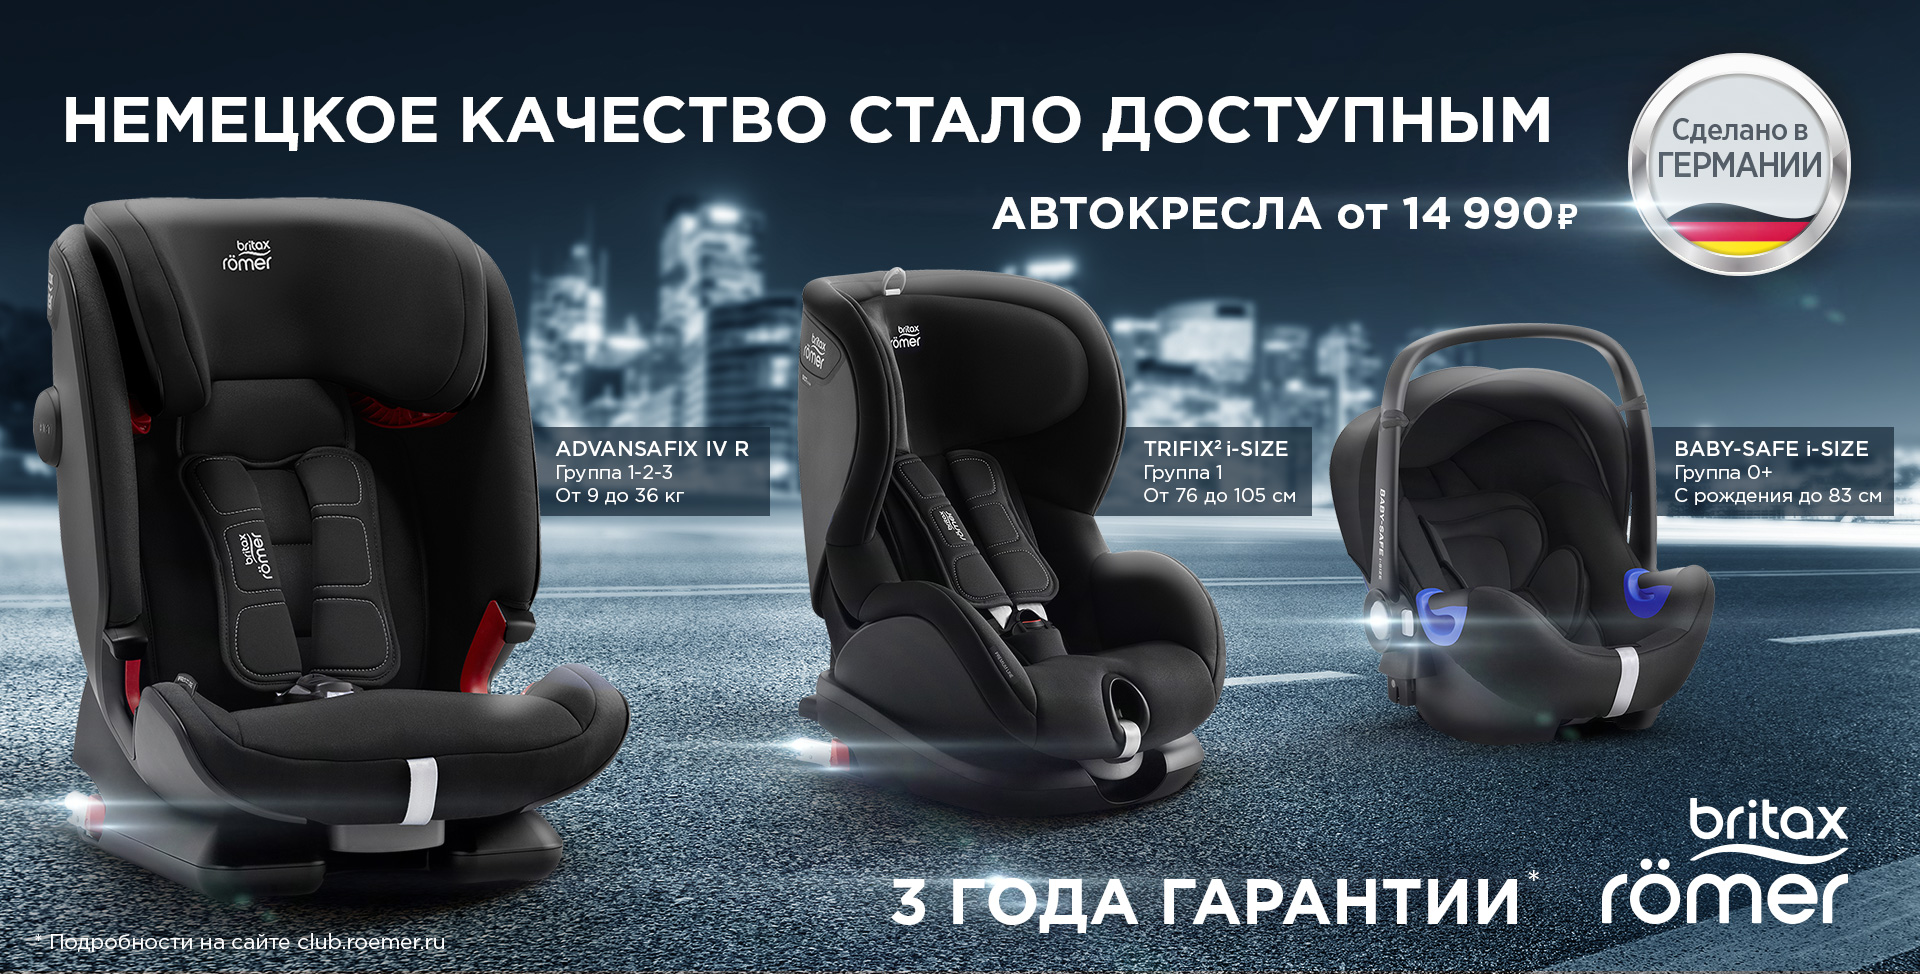 1920x974 Britax Roemer Made In Germany.jpg (1920×974)